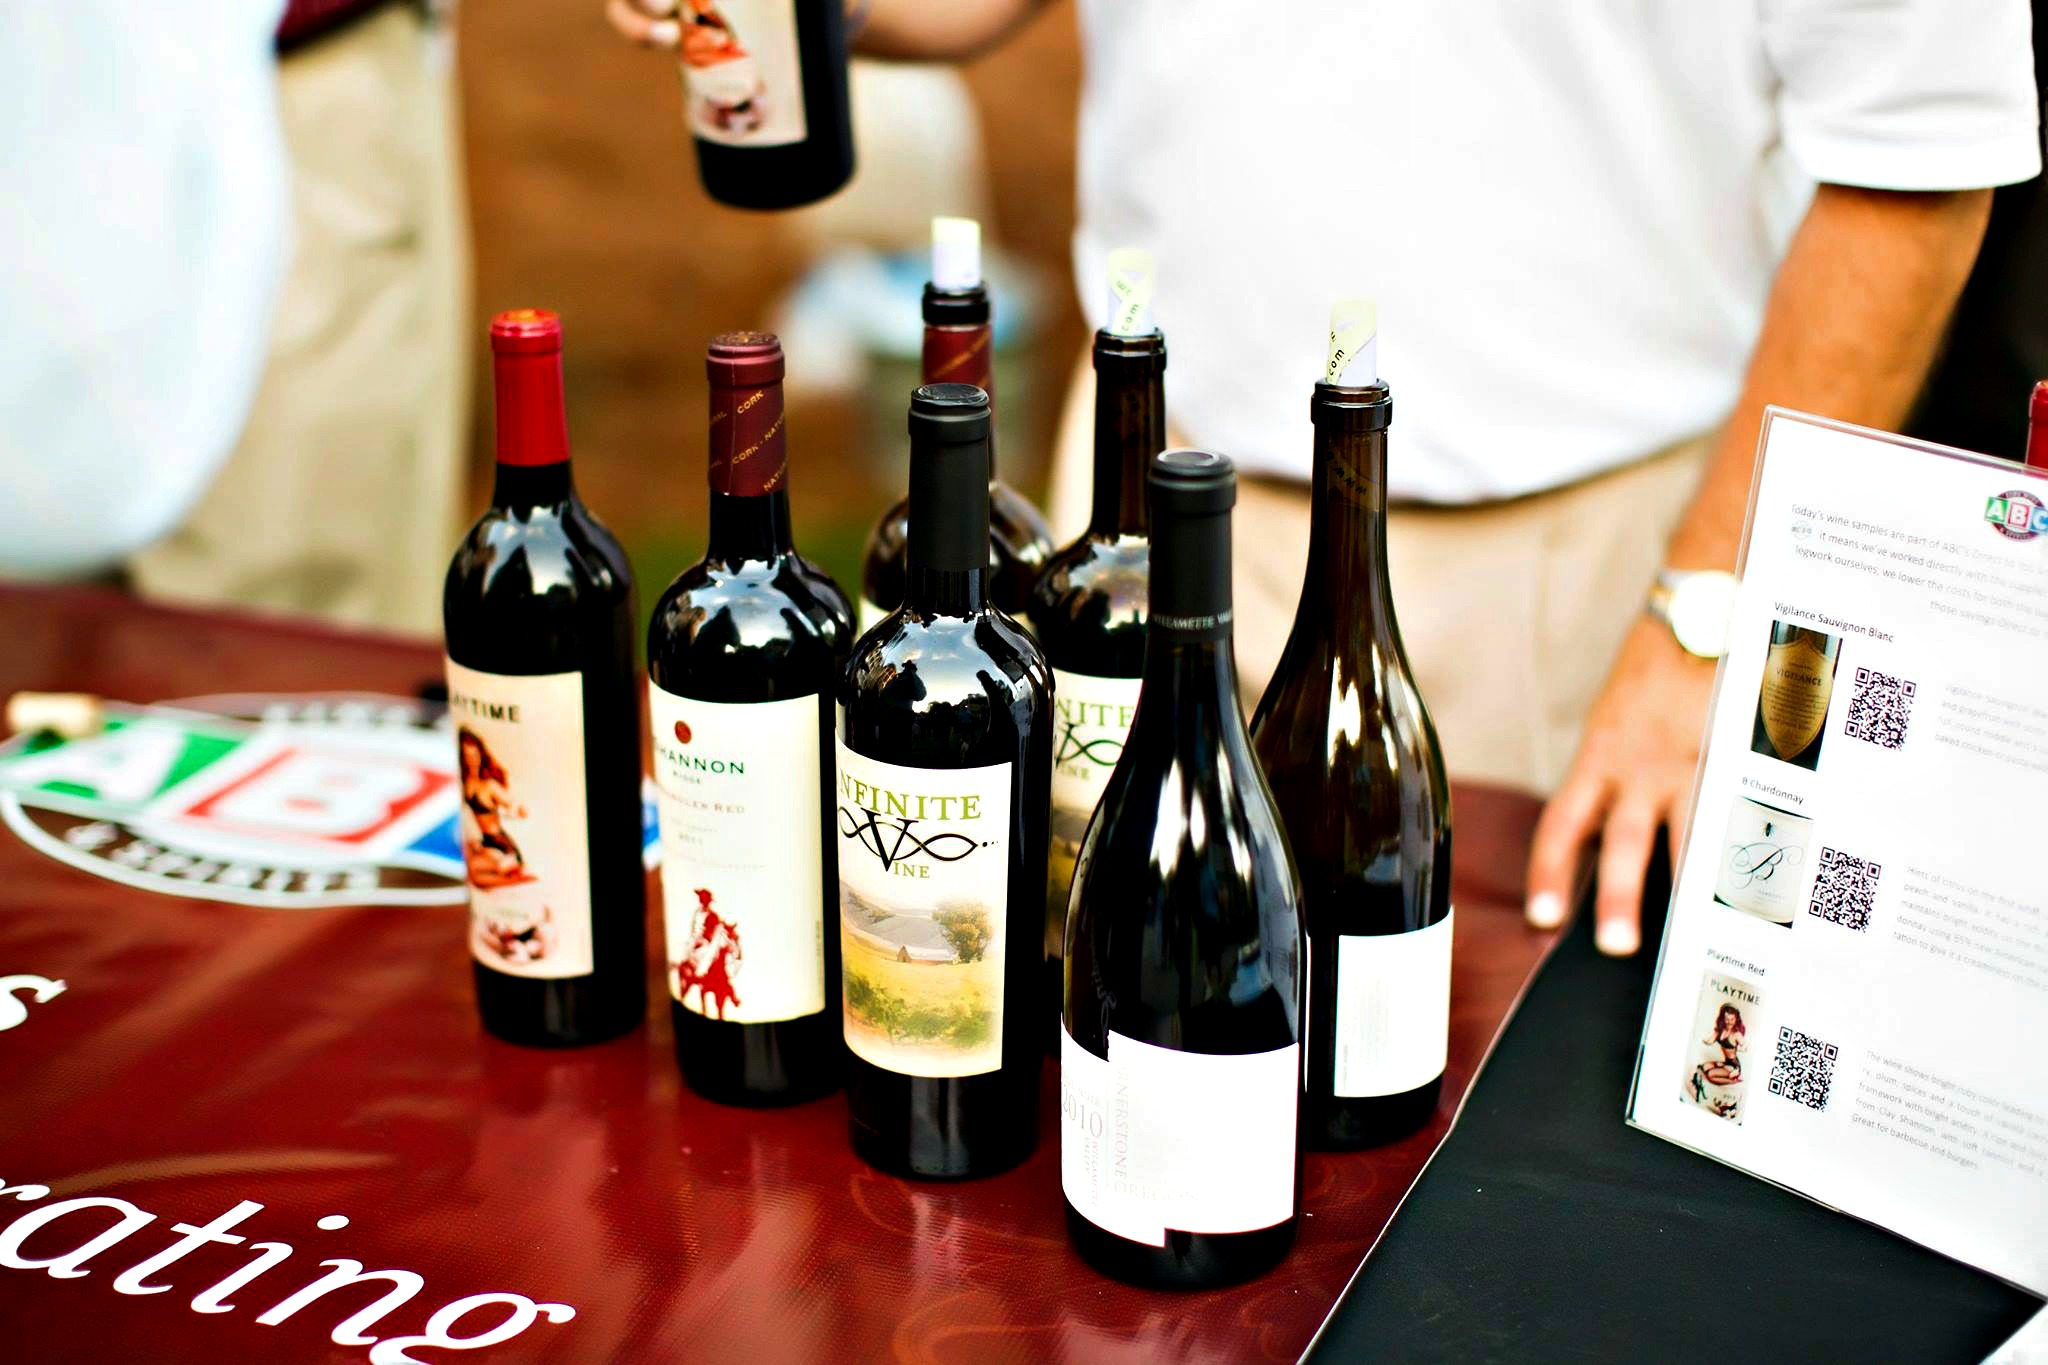 Sandestin Wine Festival sample bottles grouped on table